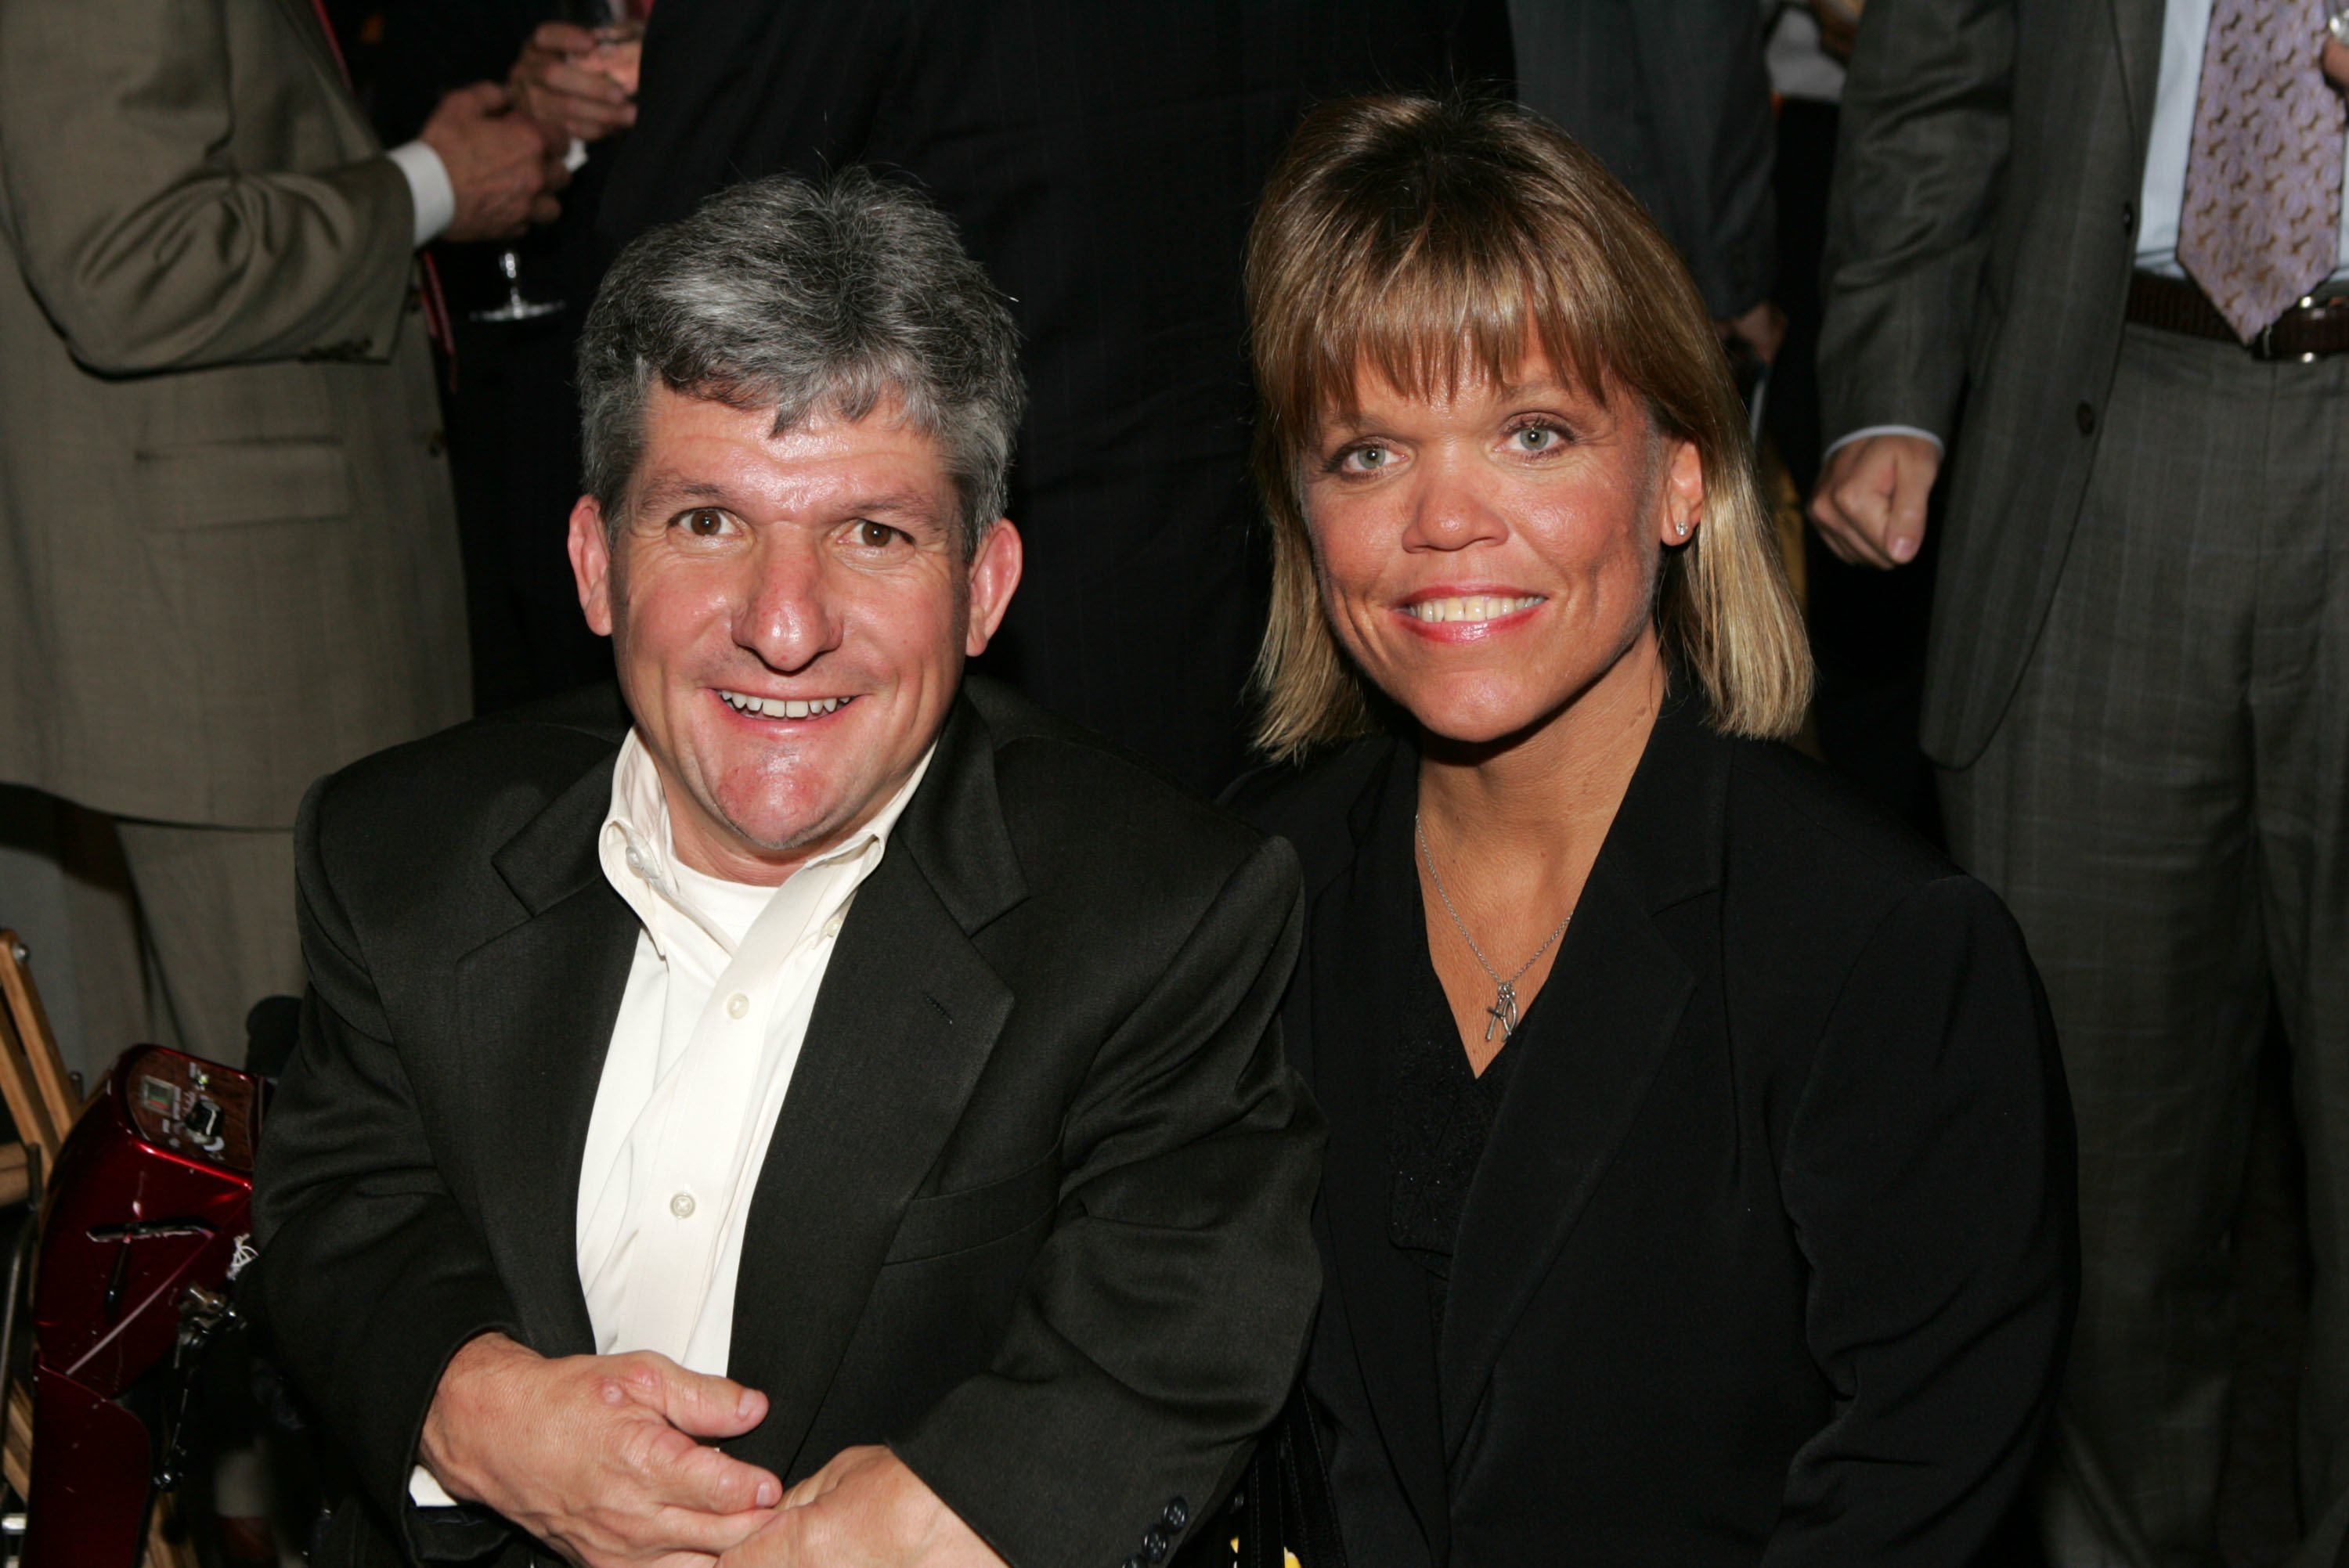 Matt and Amy Roloff at the Discovery Upfront Presentation NY - Talent Images on April 23, 2008, in New York City| Photo :Getty Images